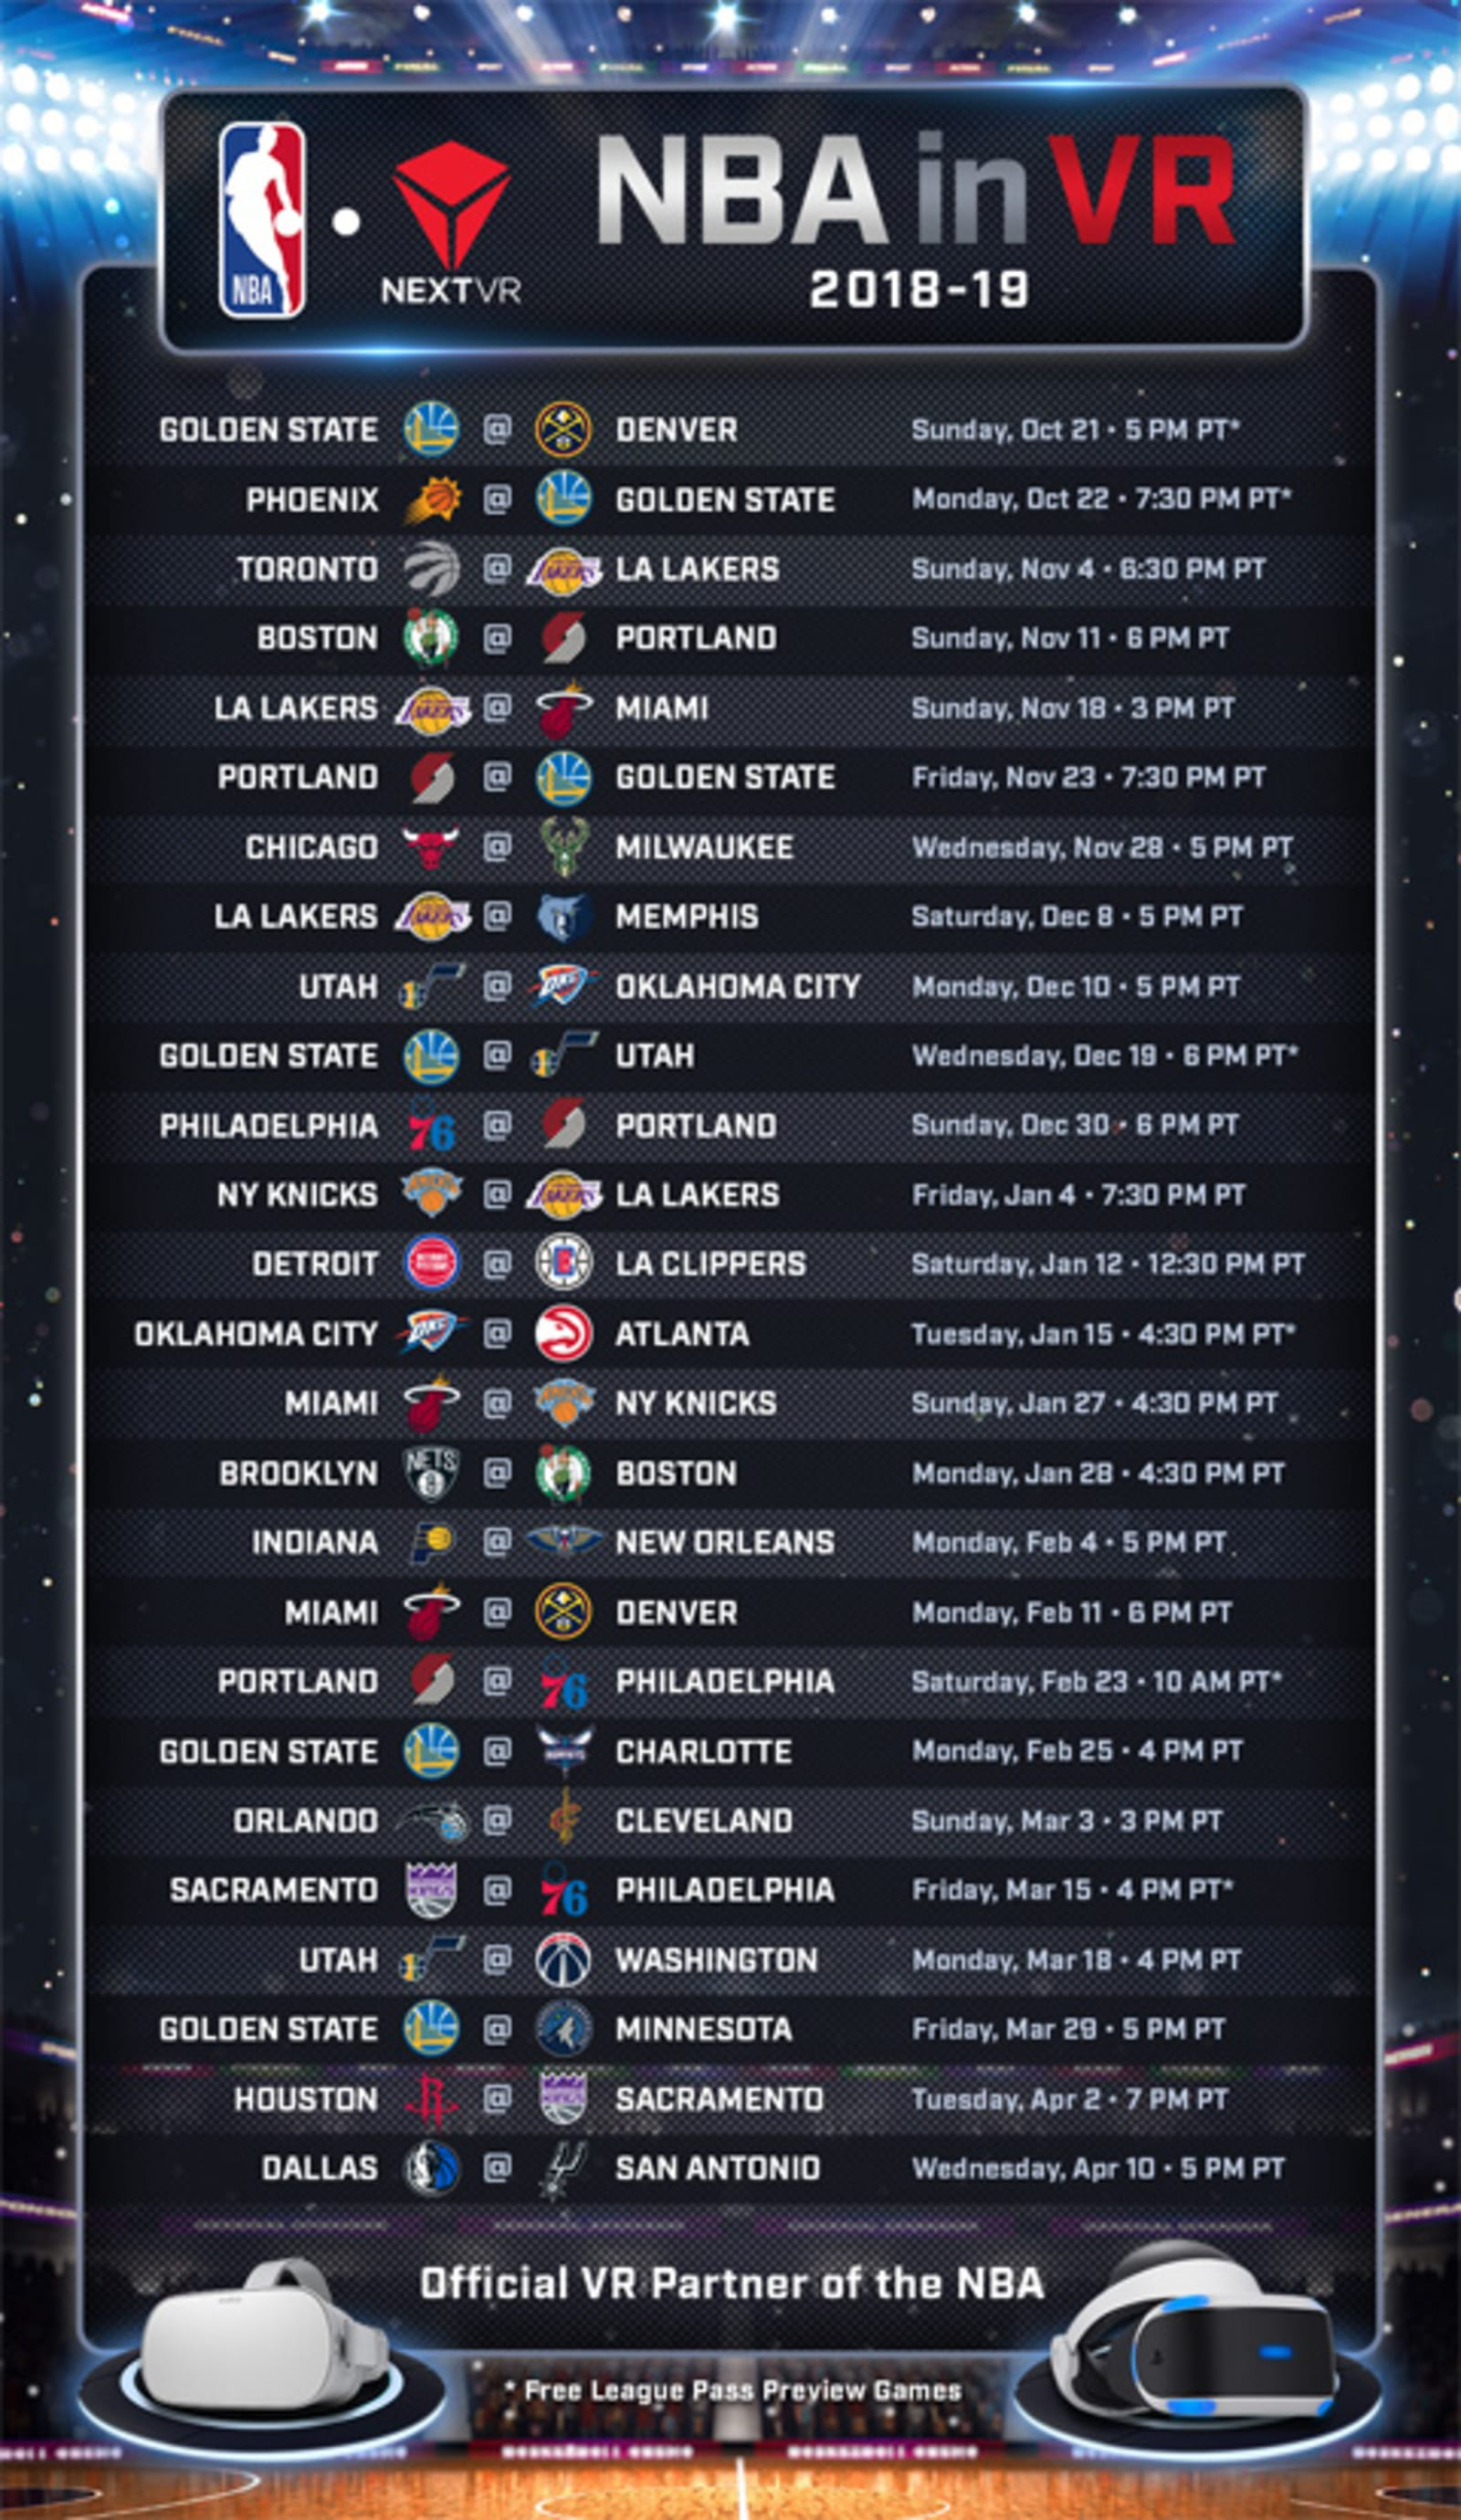 NBA League Pass 2018-2019 VR schedule